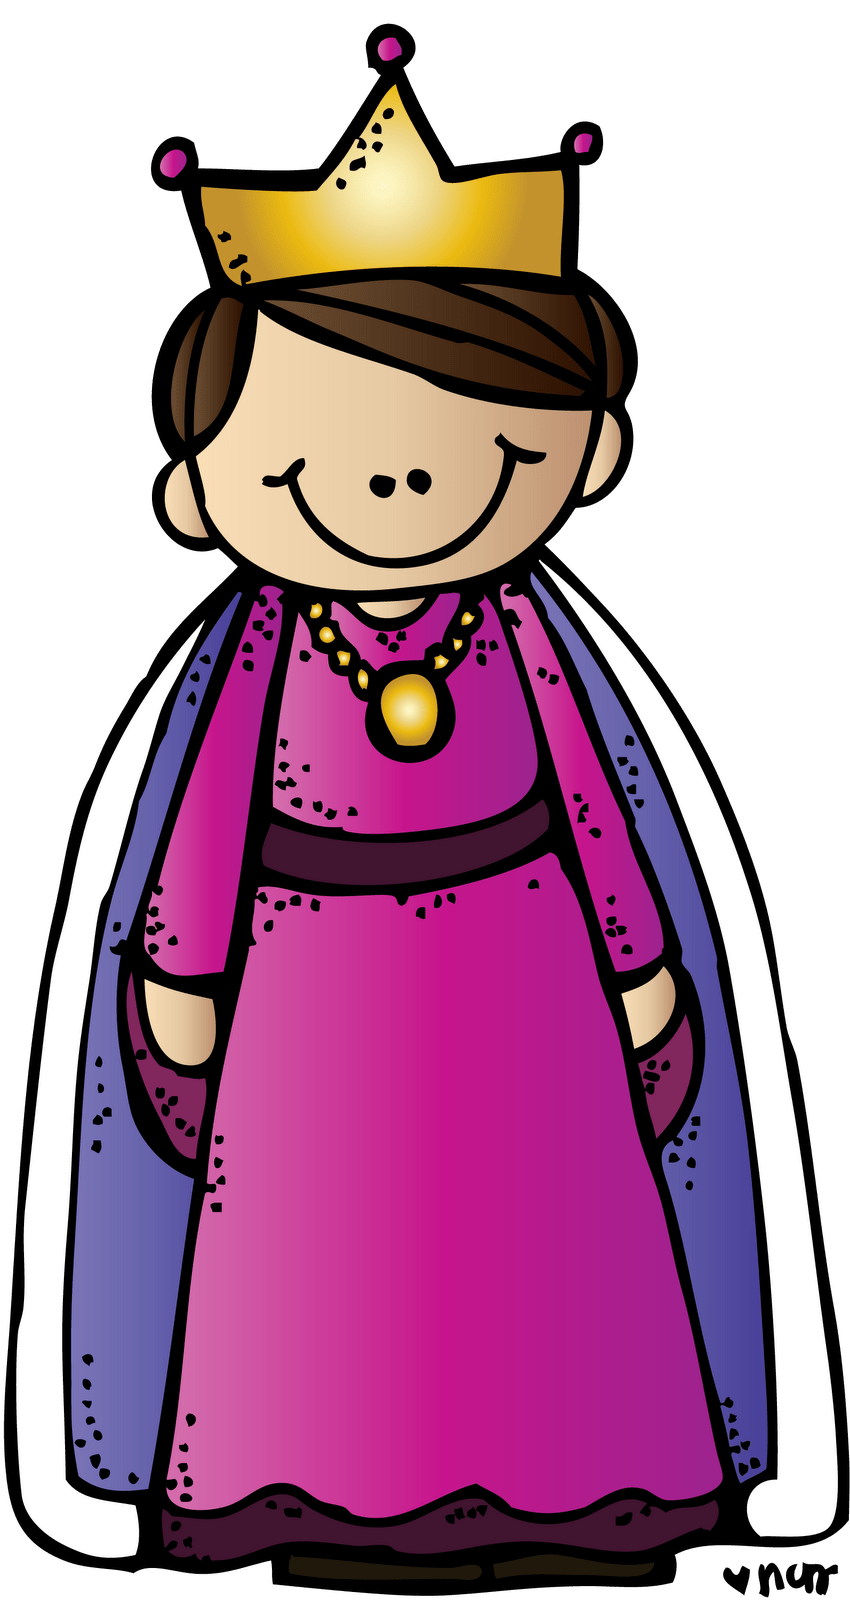 hight resolution of 850x1600 best king clipart